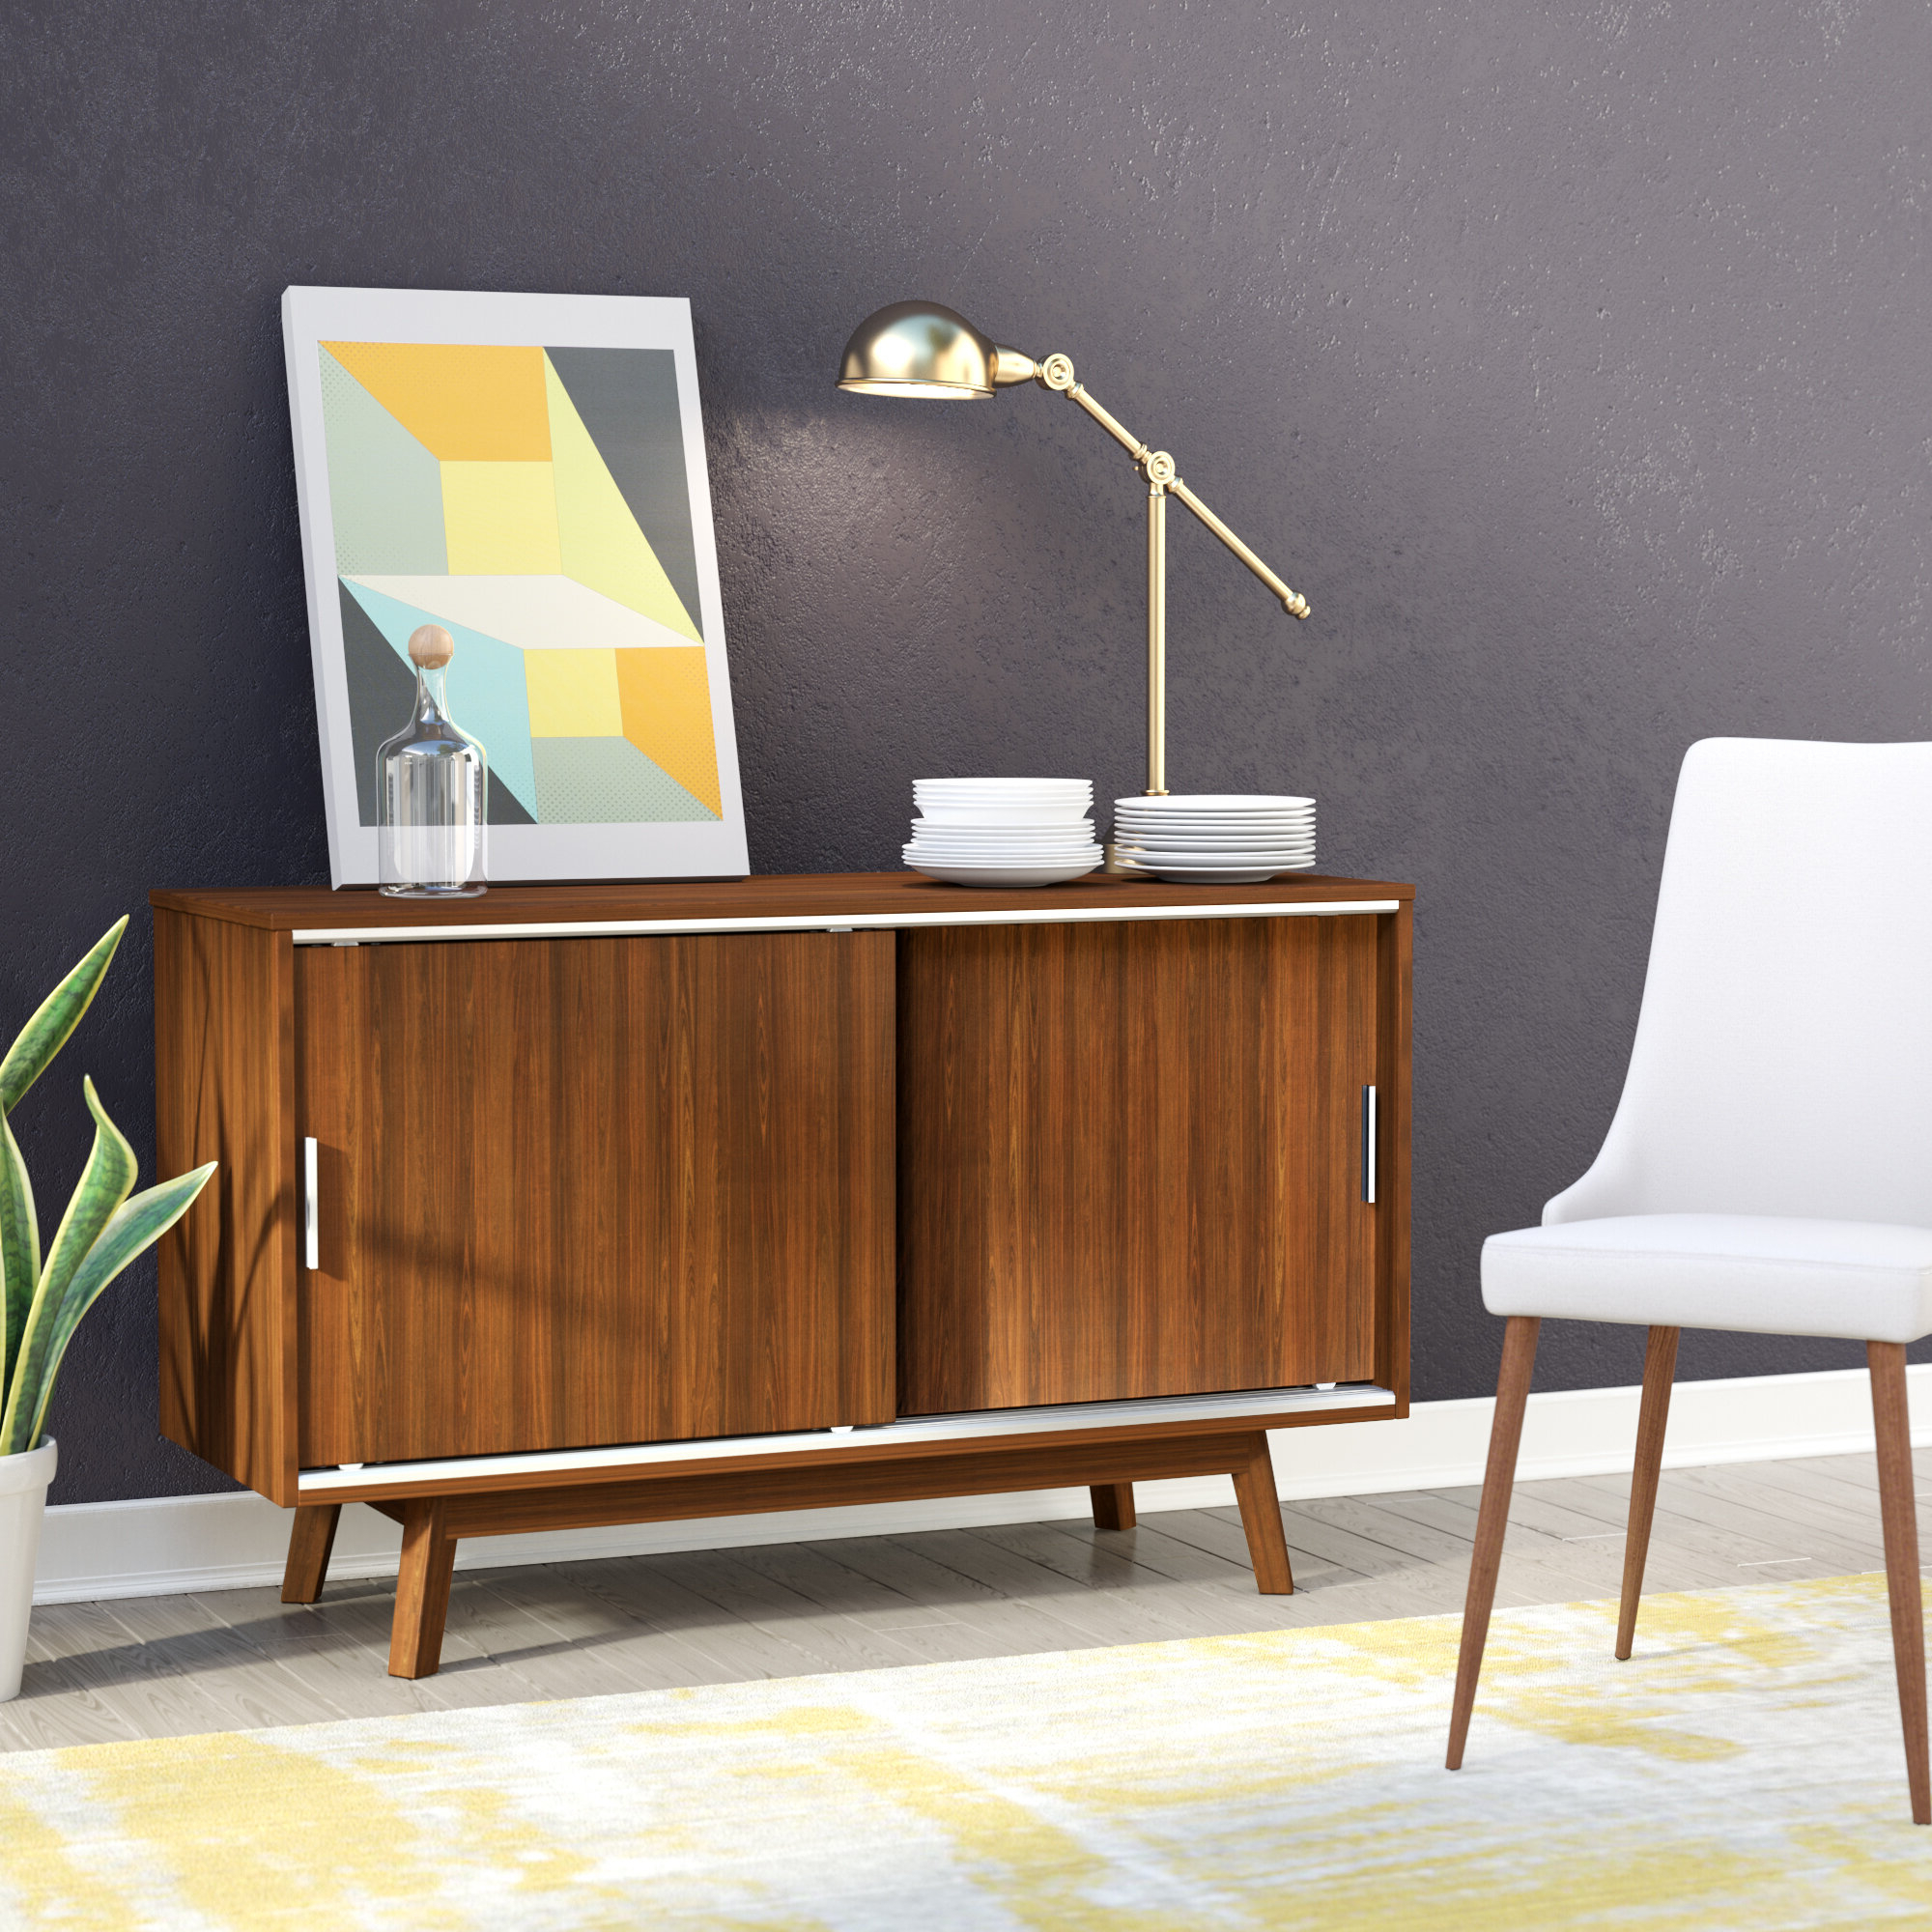 Norwell Credenza Regarding Bright Angles Credenzas (View 16 of 20)